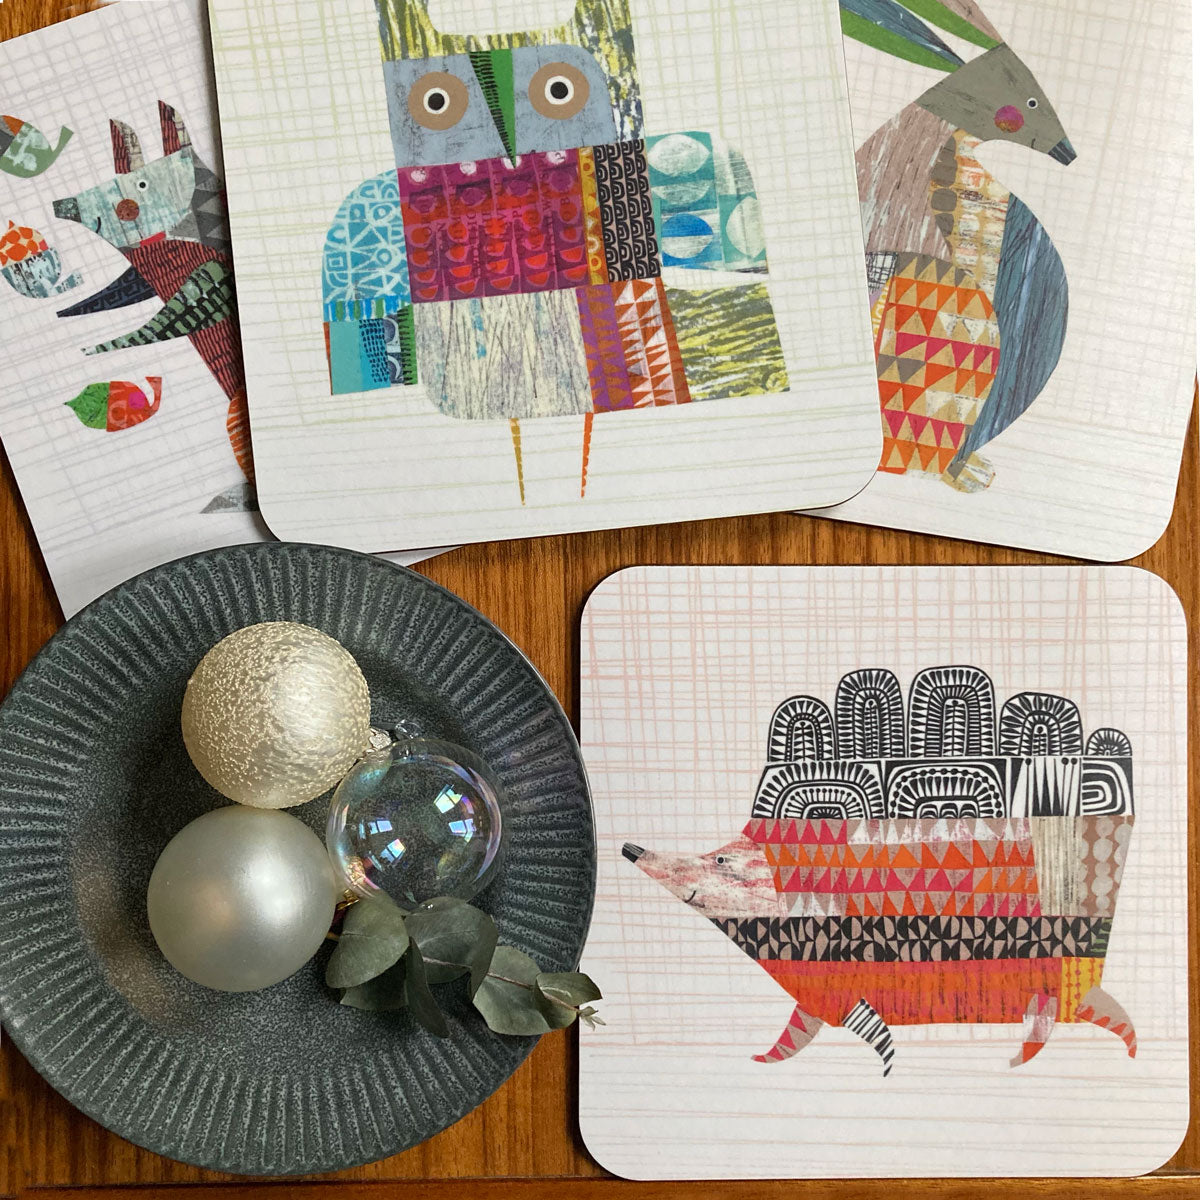 NEW: Mats and coasters by Clare Youngs